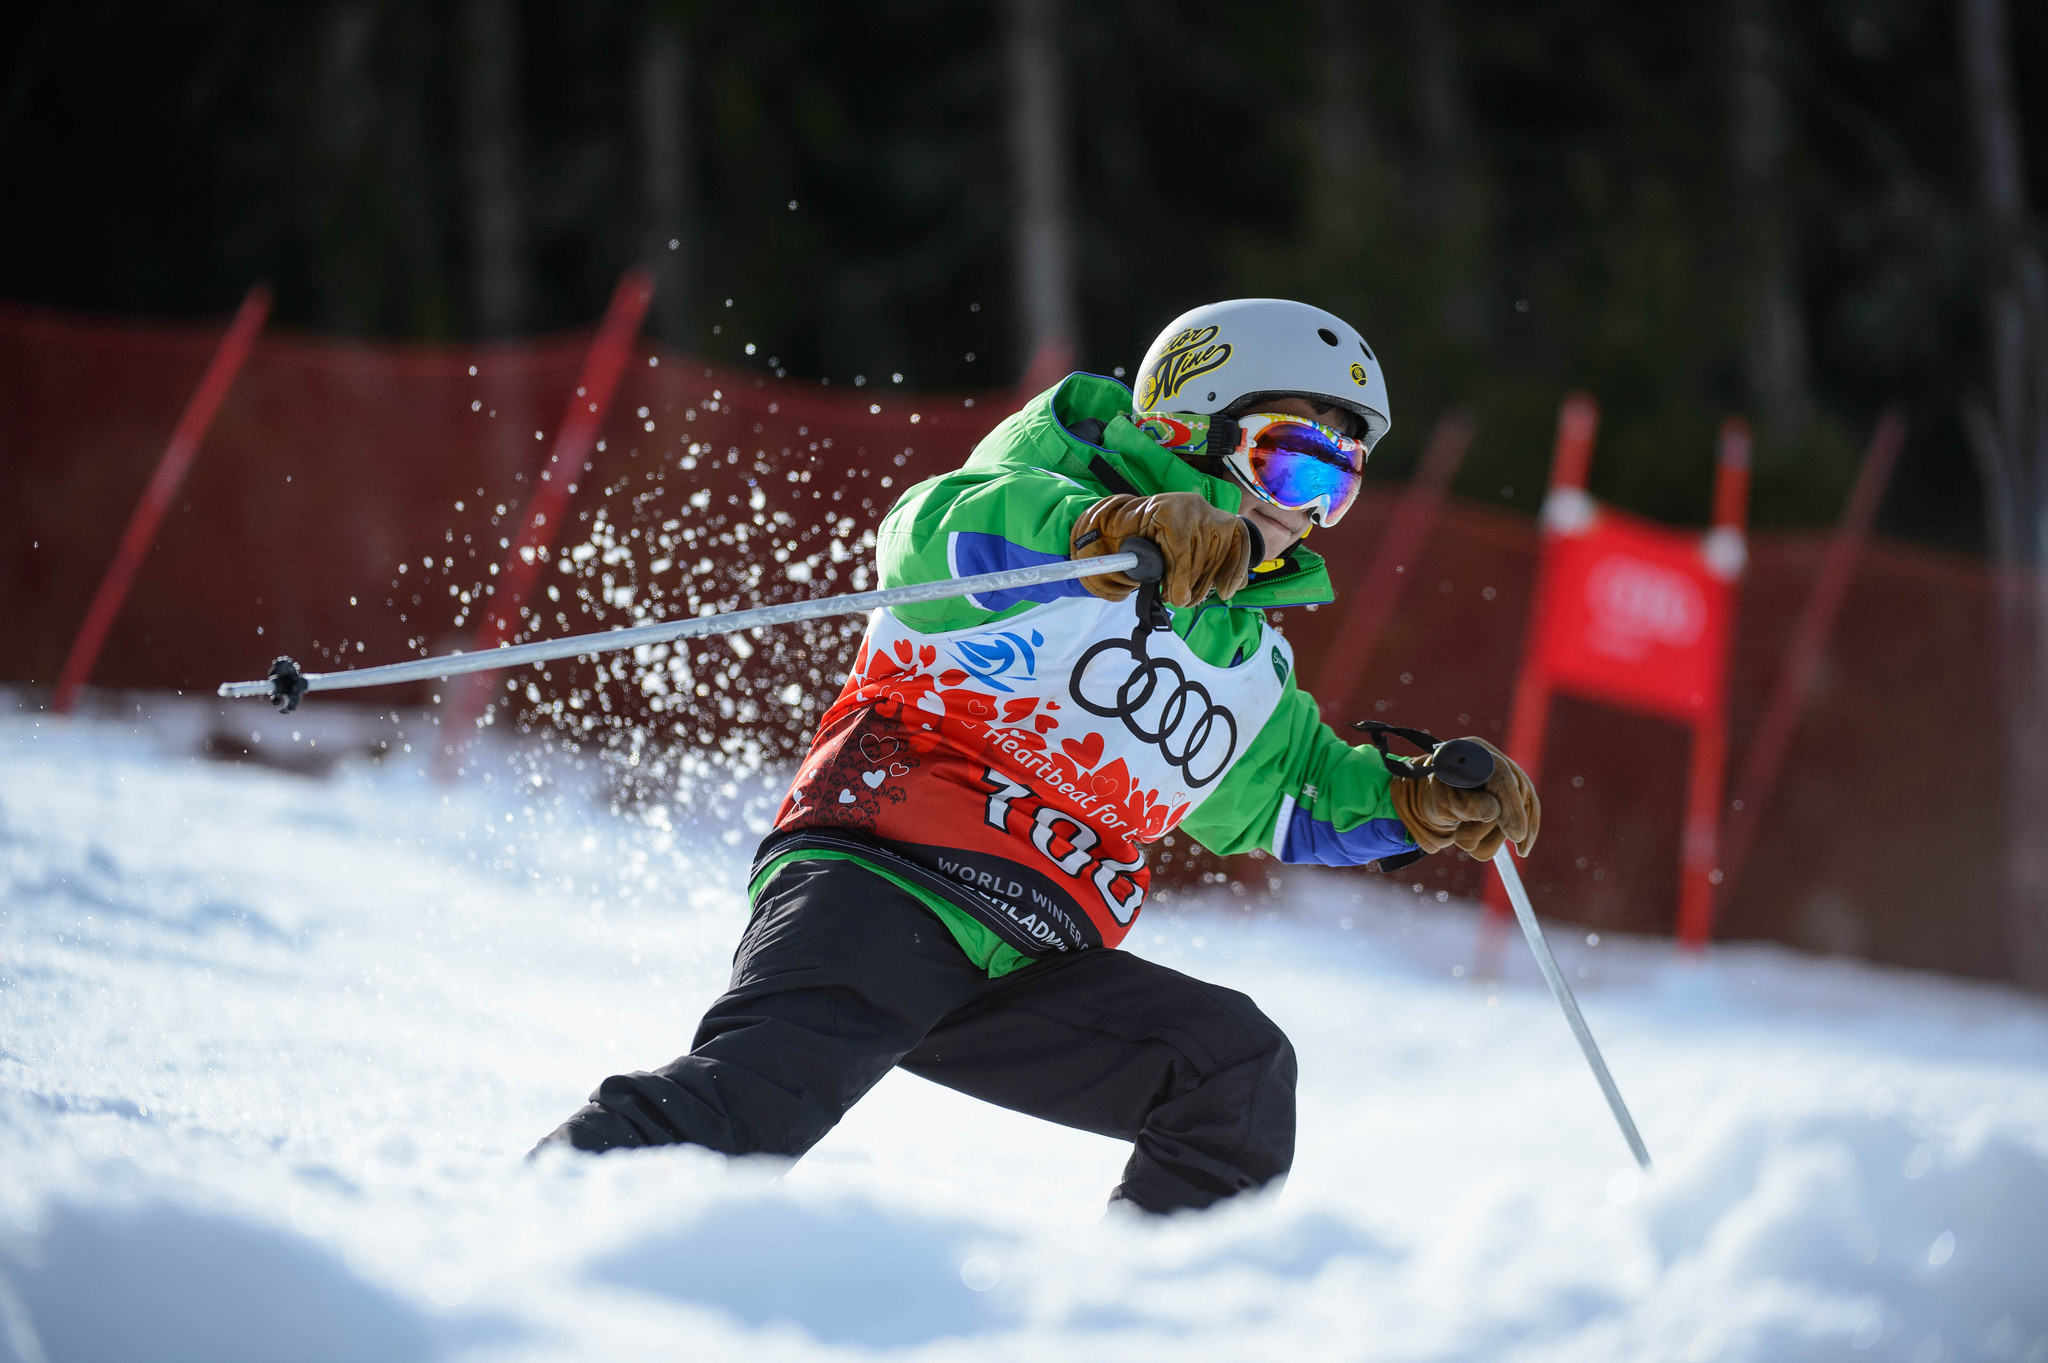 Sweden named as host of 2021 Special Olympics World Winter Games